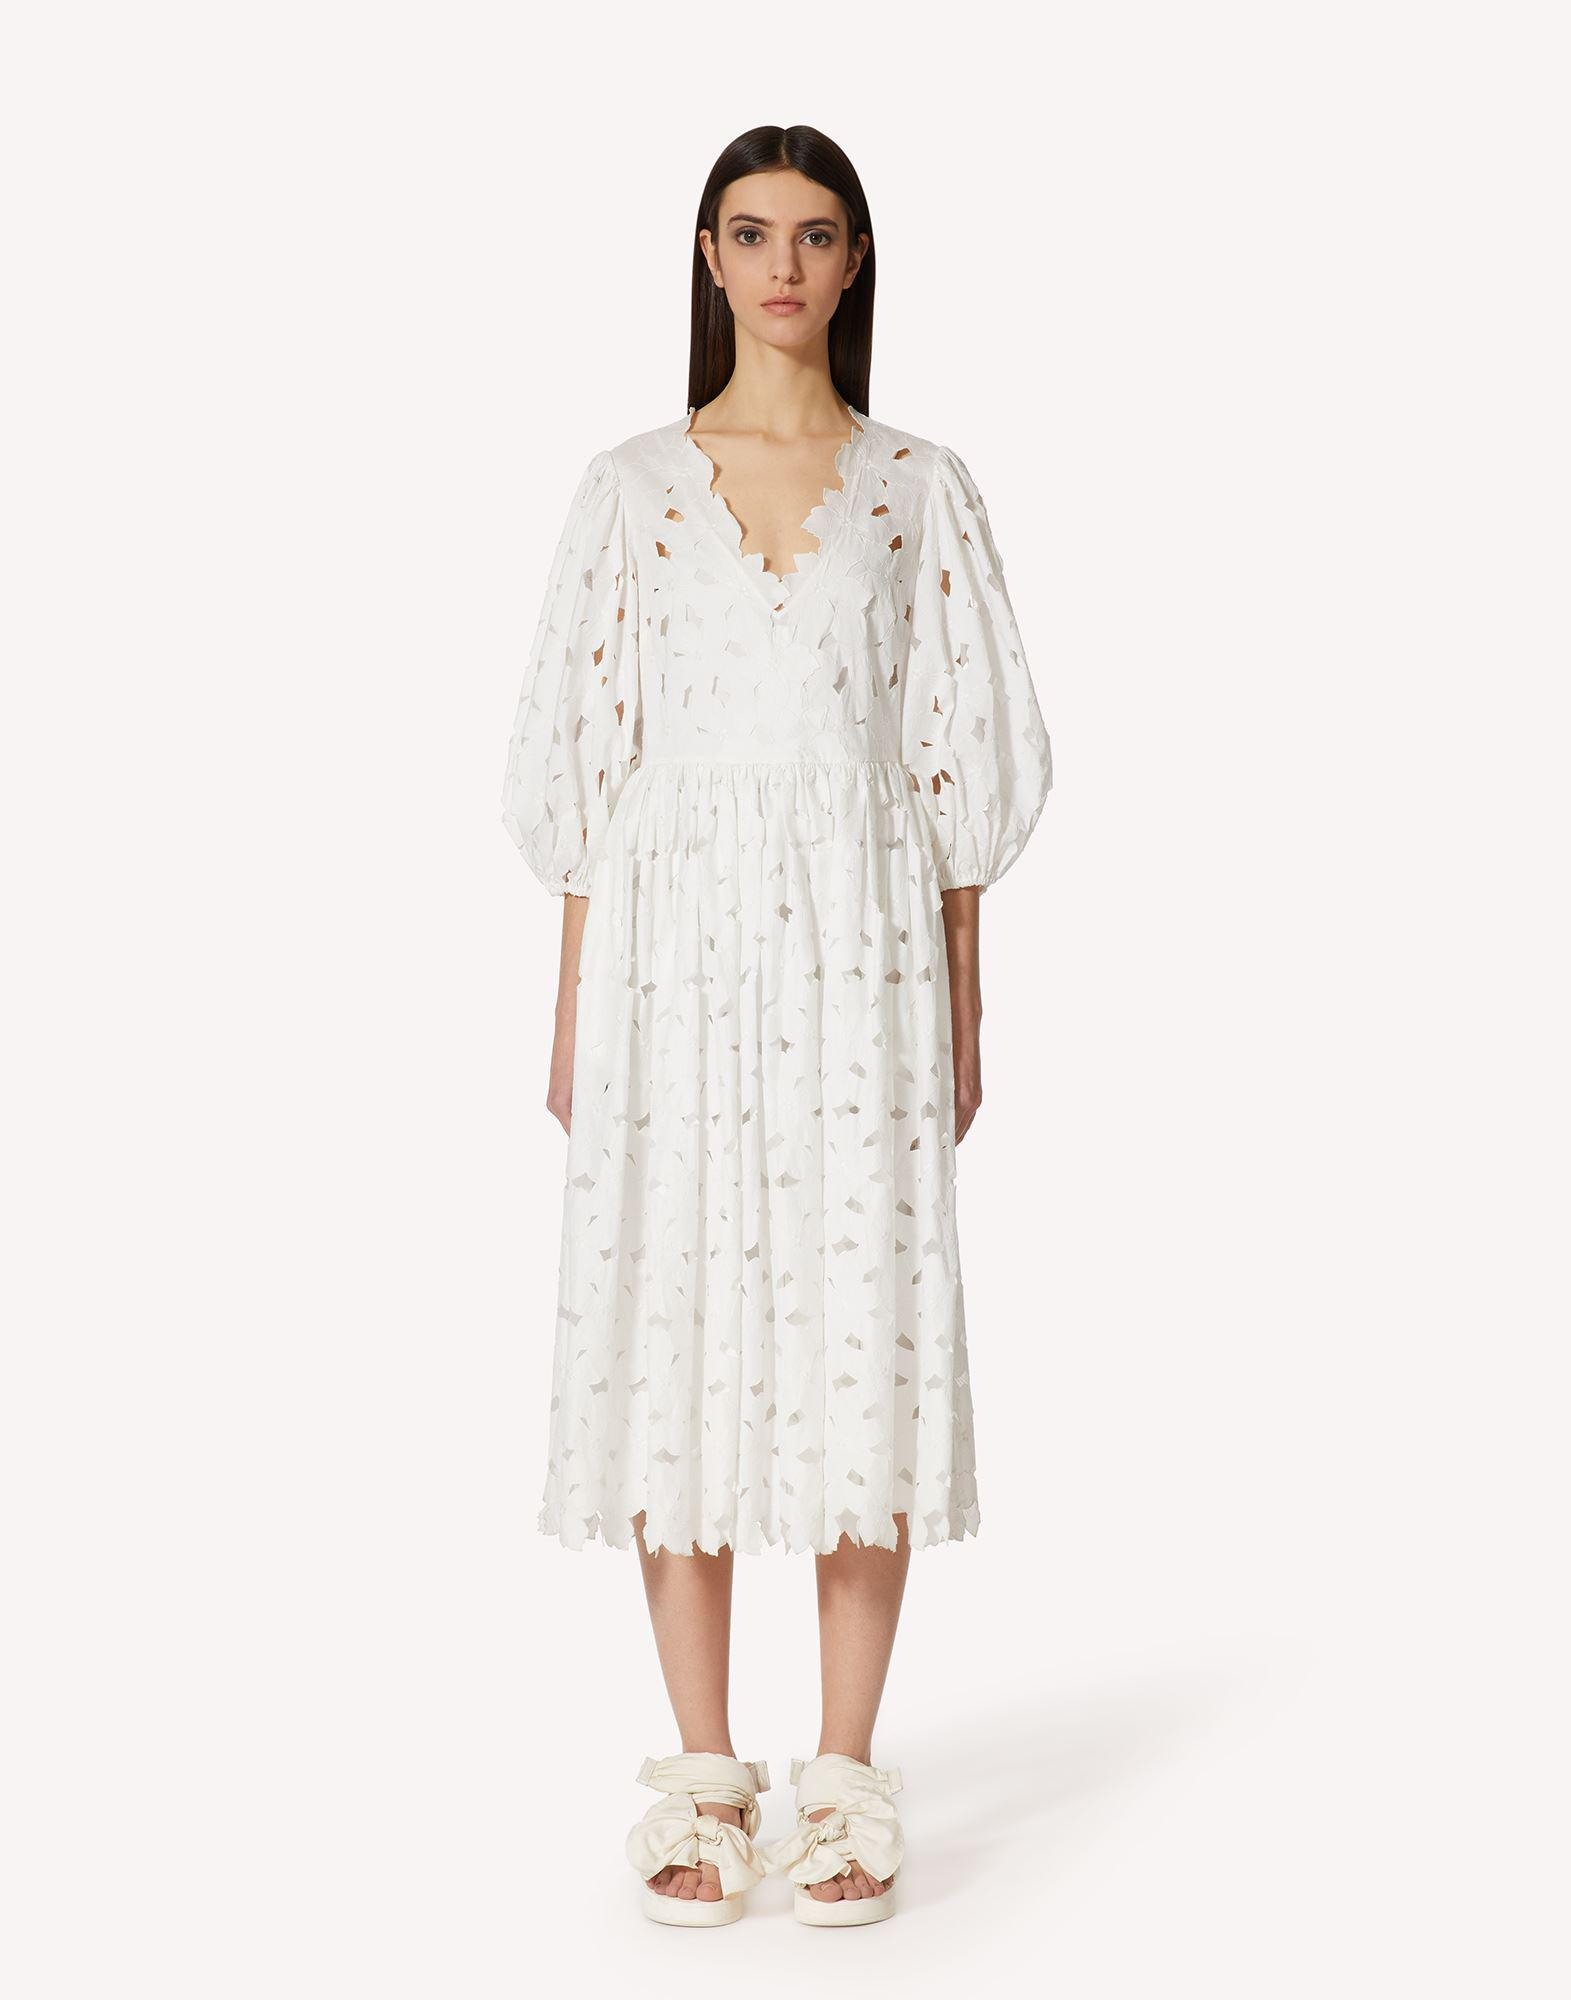 COTTON POPLIN DRESS WITH CUT-OUT EMBROIDERY